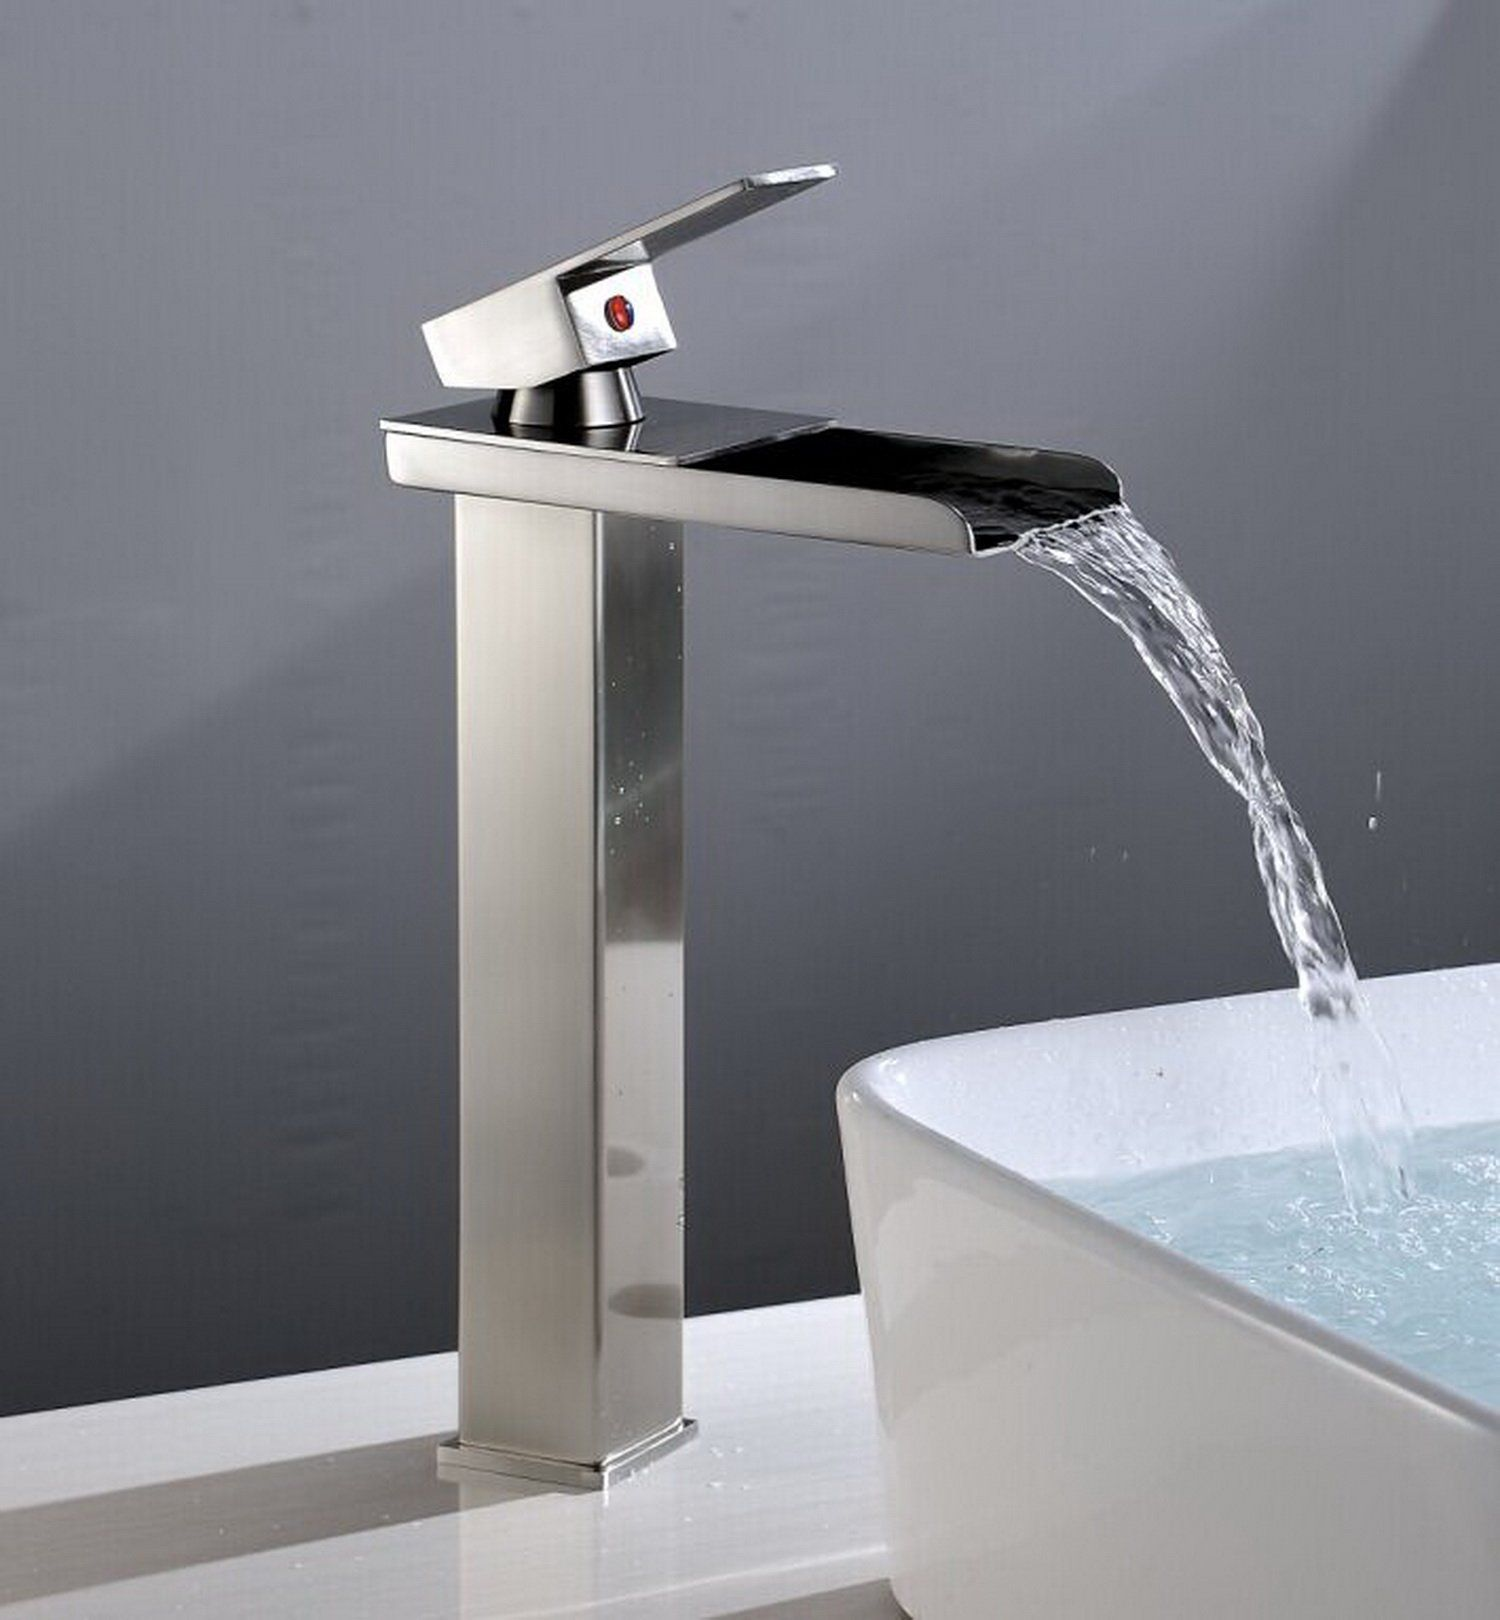 Aquafaucet Tall Nickel Brushed Waterfall Bathroom Sink Vessel